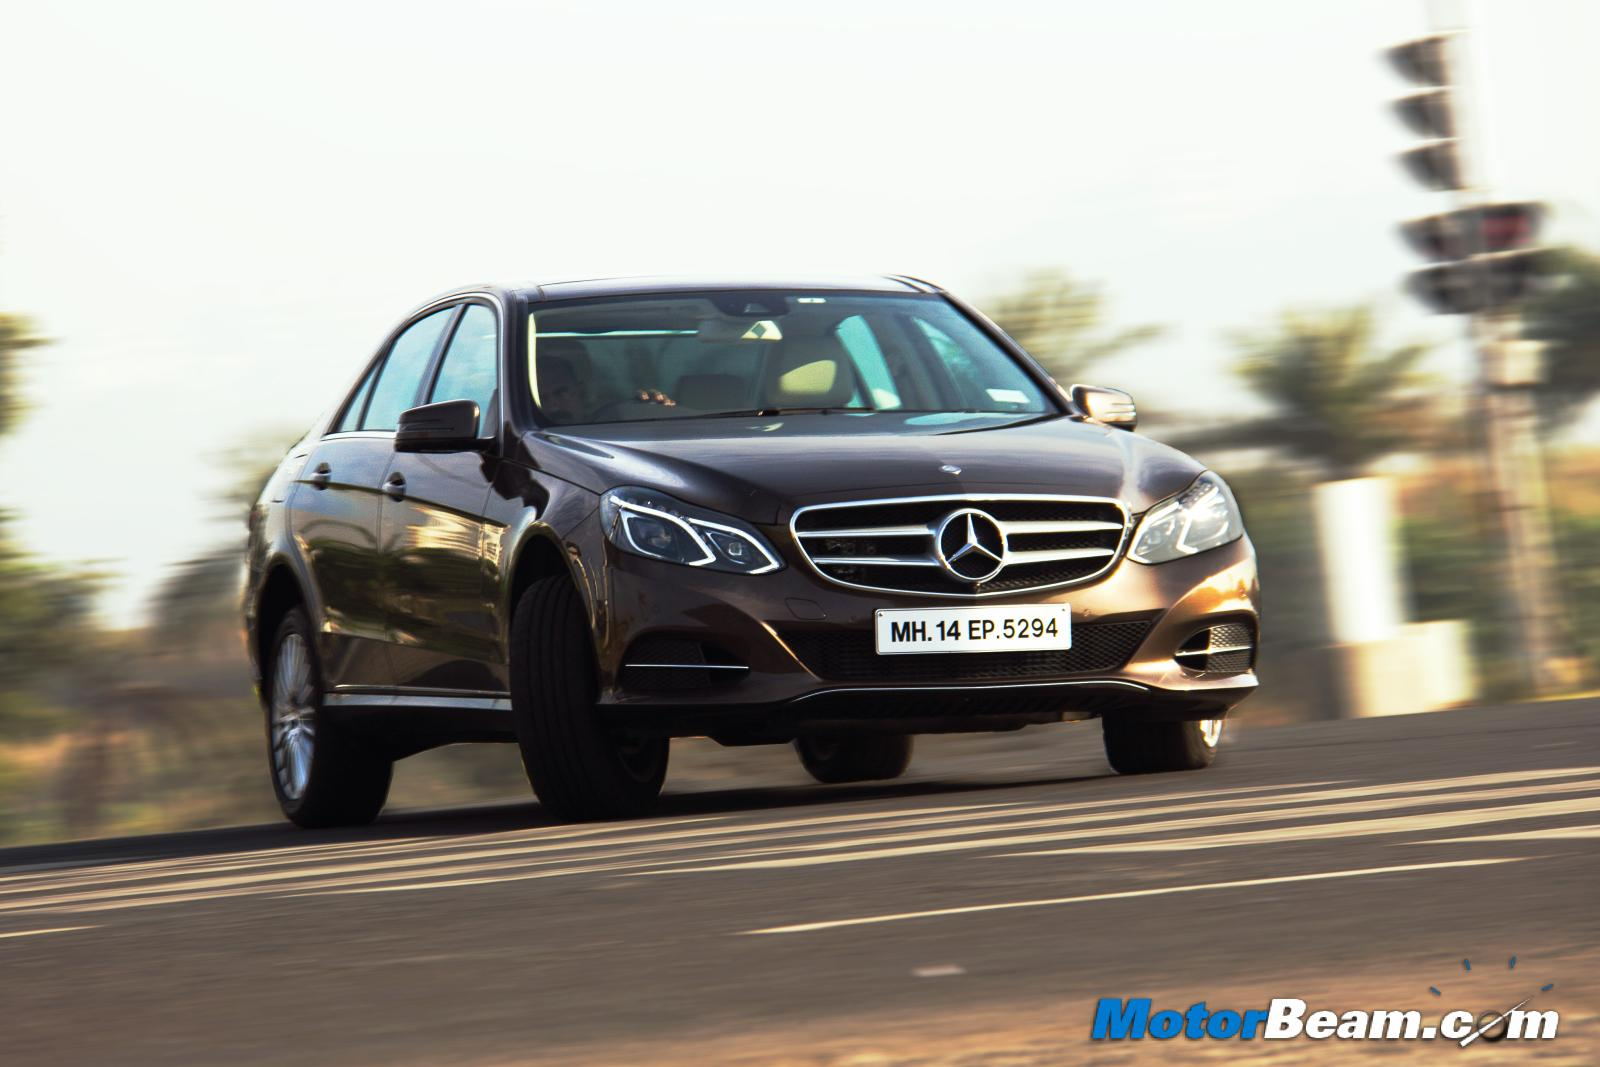 2015 Mercedes E350 CDI Review